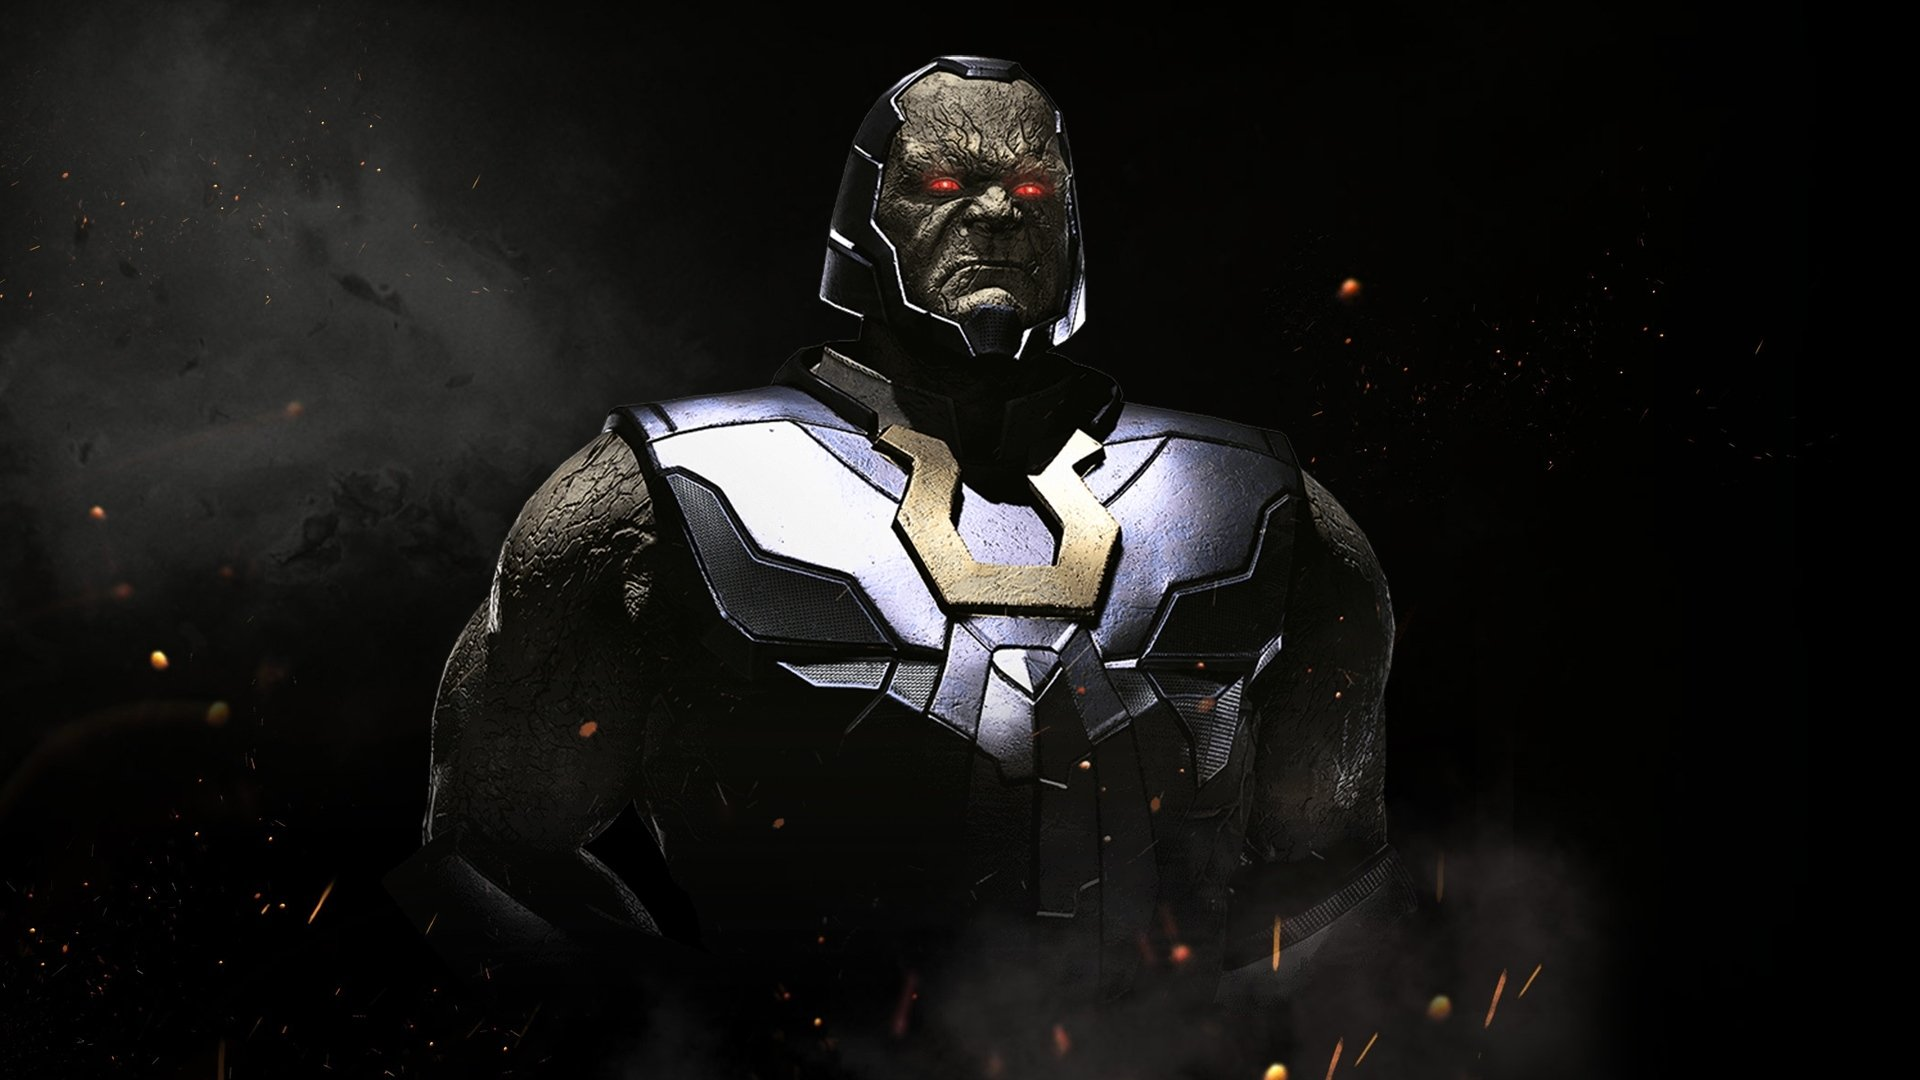 Darkseid Wallpapers 5J5YW3L 1920x1080   4USkY 1920x1080